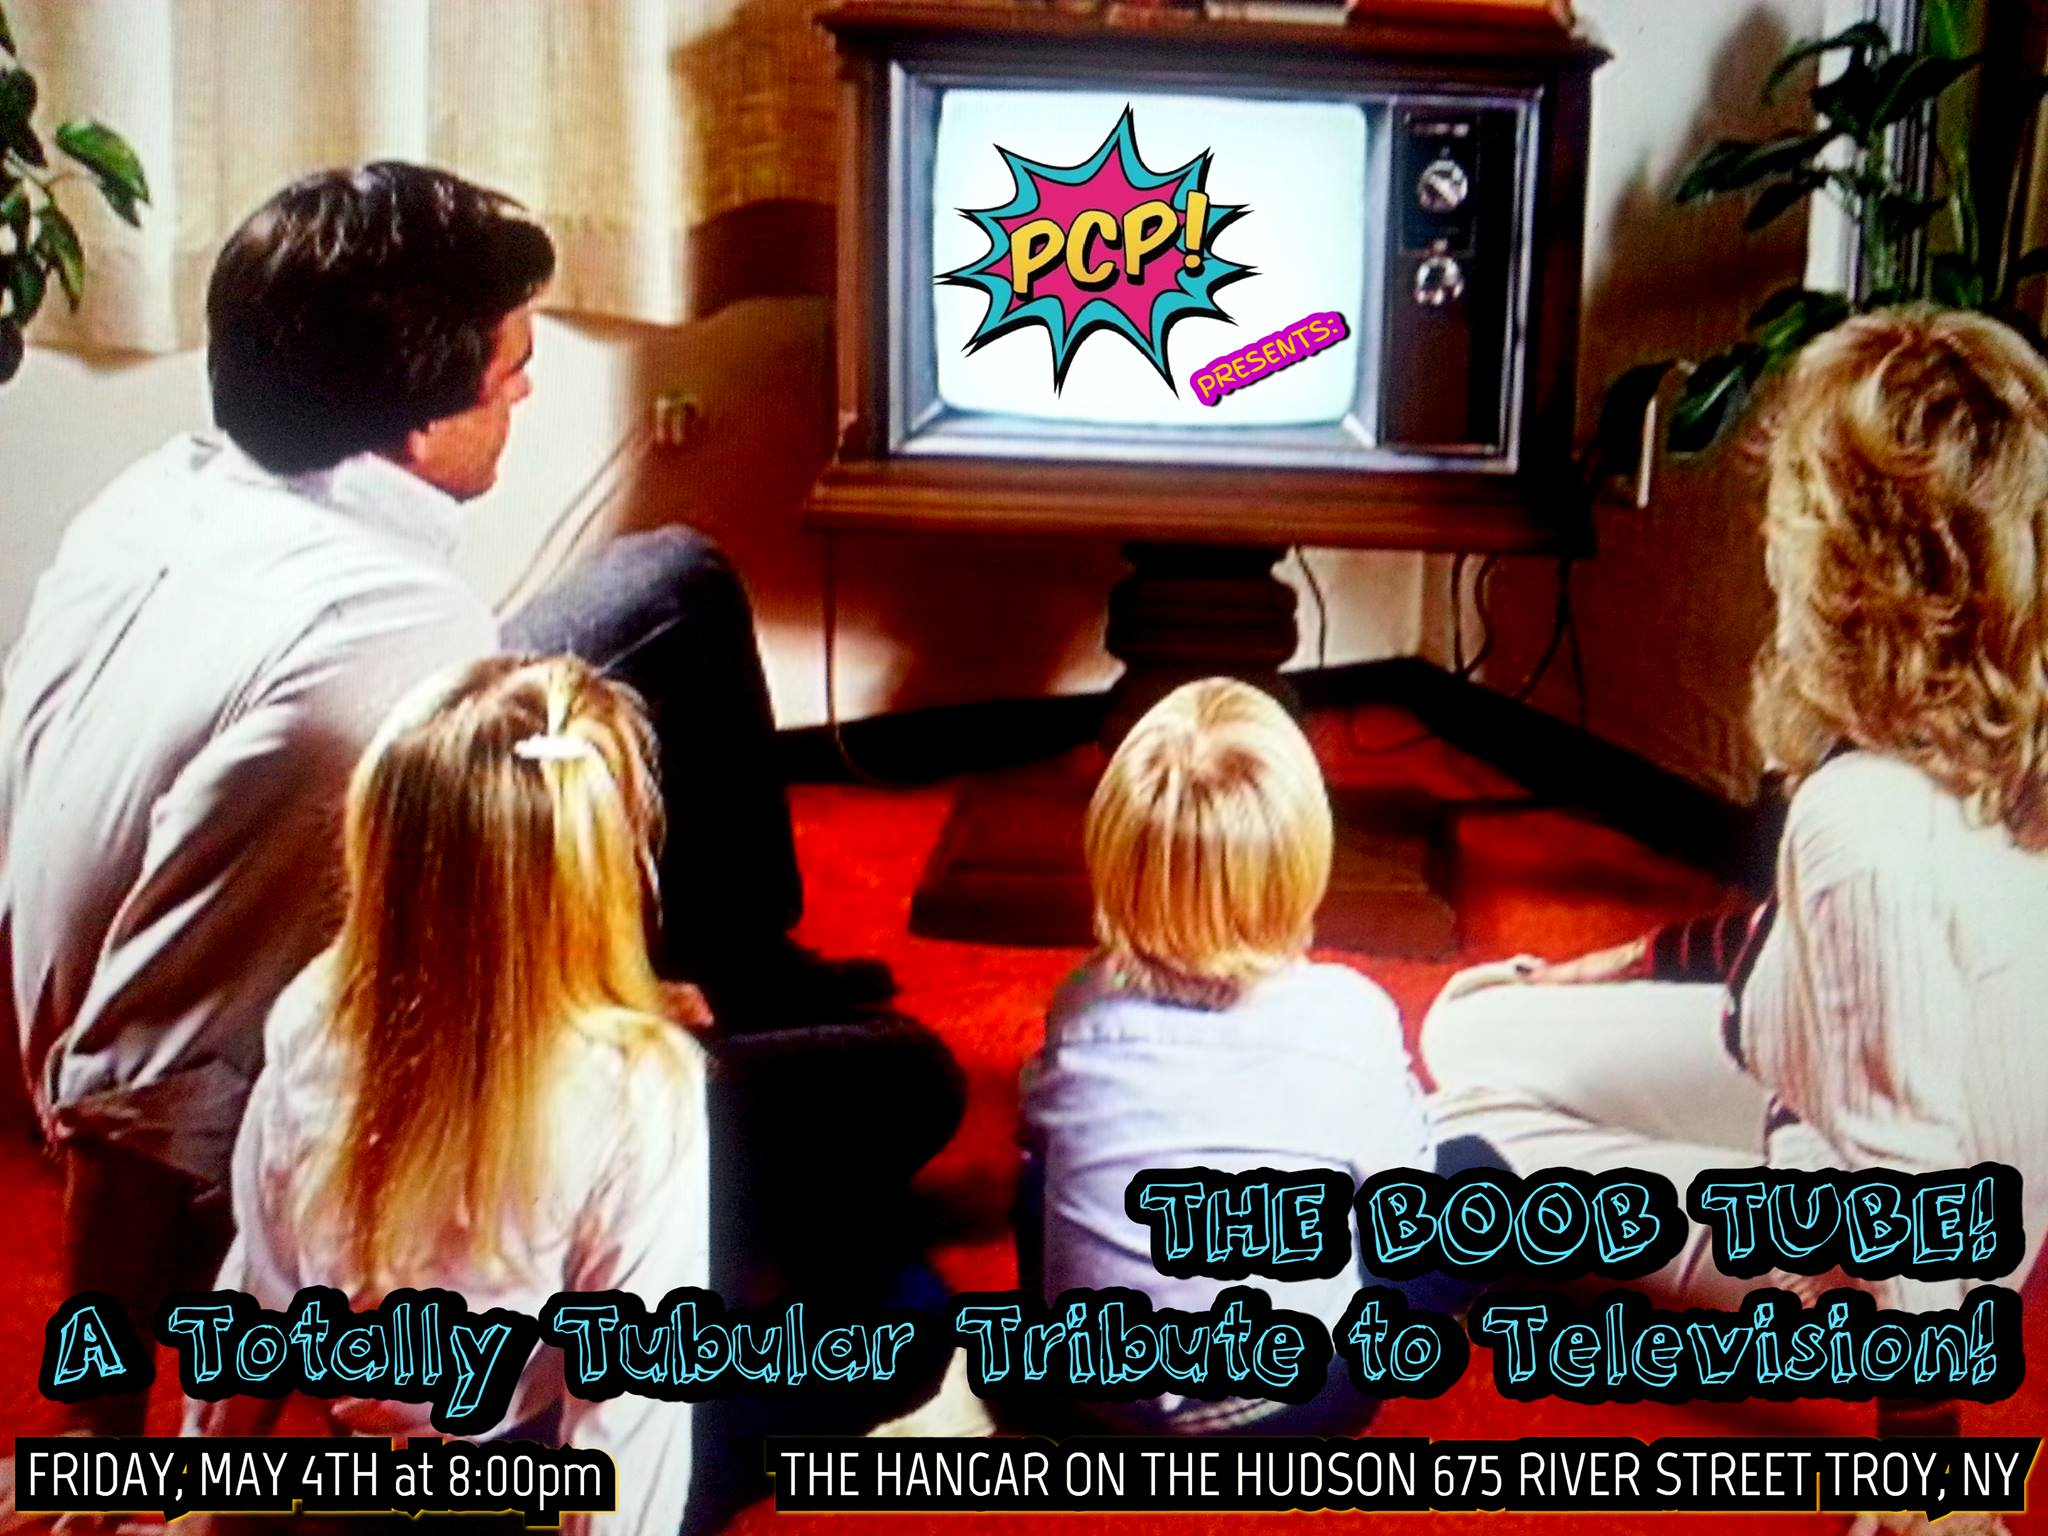 - Get off the couch, and get over to THE BOOB TUBE by the ladies of Pop Culture Provocateurs!Win prizes from That Store in the raffle!  Pop Culture Provocateurs Presents... THE BOOB TUBE! A totally tubular tribute to television! Action! Comedy! Drama! And so much more! Don't change that channel! Join some of your television favorites in a night of all new burlesque! Starring:DOLL BODY (New York City)GEORGIA O'PEACHMAXINE DE LA OBSCENEMUSTANG MAYHEM (Philadelphia)MINNIE DERRIERE NOELLE REIGNPERSEPHONE POMMETEASY ROOSEVELT GoGo & Kitten: TITANIA NOXHosted By: PENNY SCANDAL (Rochester)Tickets: $15 PRE-SALE boobtube.brownpapertickets.com $25 AT THE DOORFRIDAY, MAY 4THDOORS: 8:00PM // SHOW: 9:00PM THE HANGAR ON THE HUDSON675 RIVER STREETWE ARE POP CULTURE PROVOCATEURS......an all-femme burlesque production company based in Albany, NY! Composed of powerhouse performers Noelle Reign, Persephone Pomme and Teasy Roosevelt, we aim to honor the rebellious spirit of burlesque around the Capital Region.